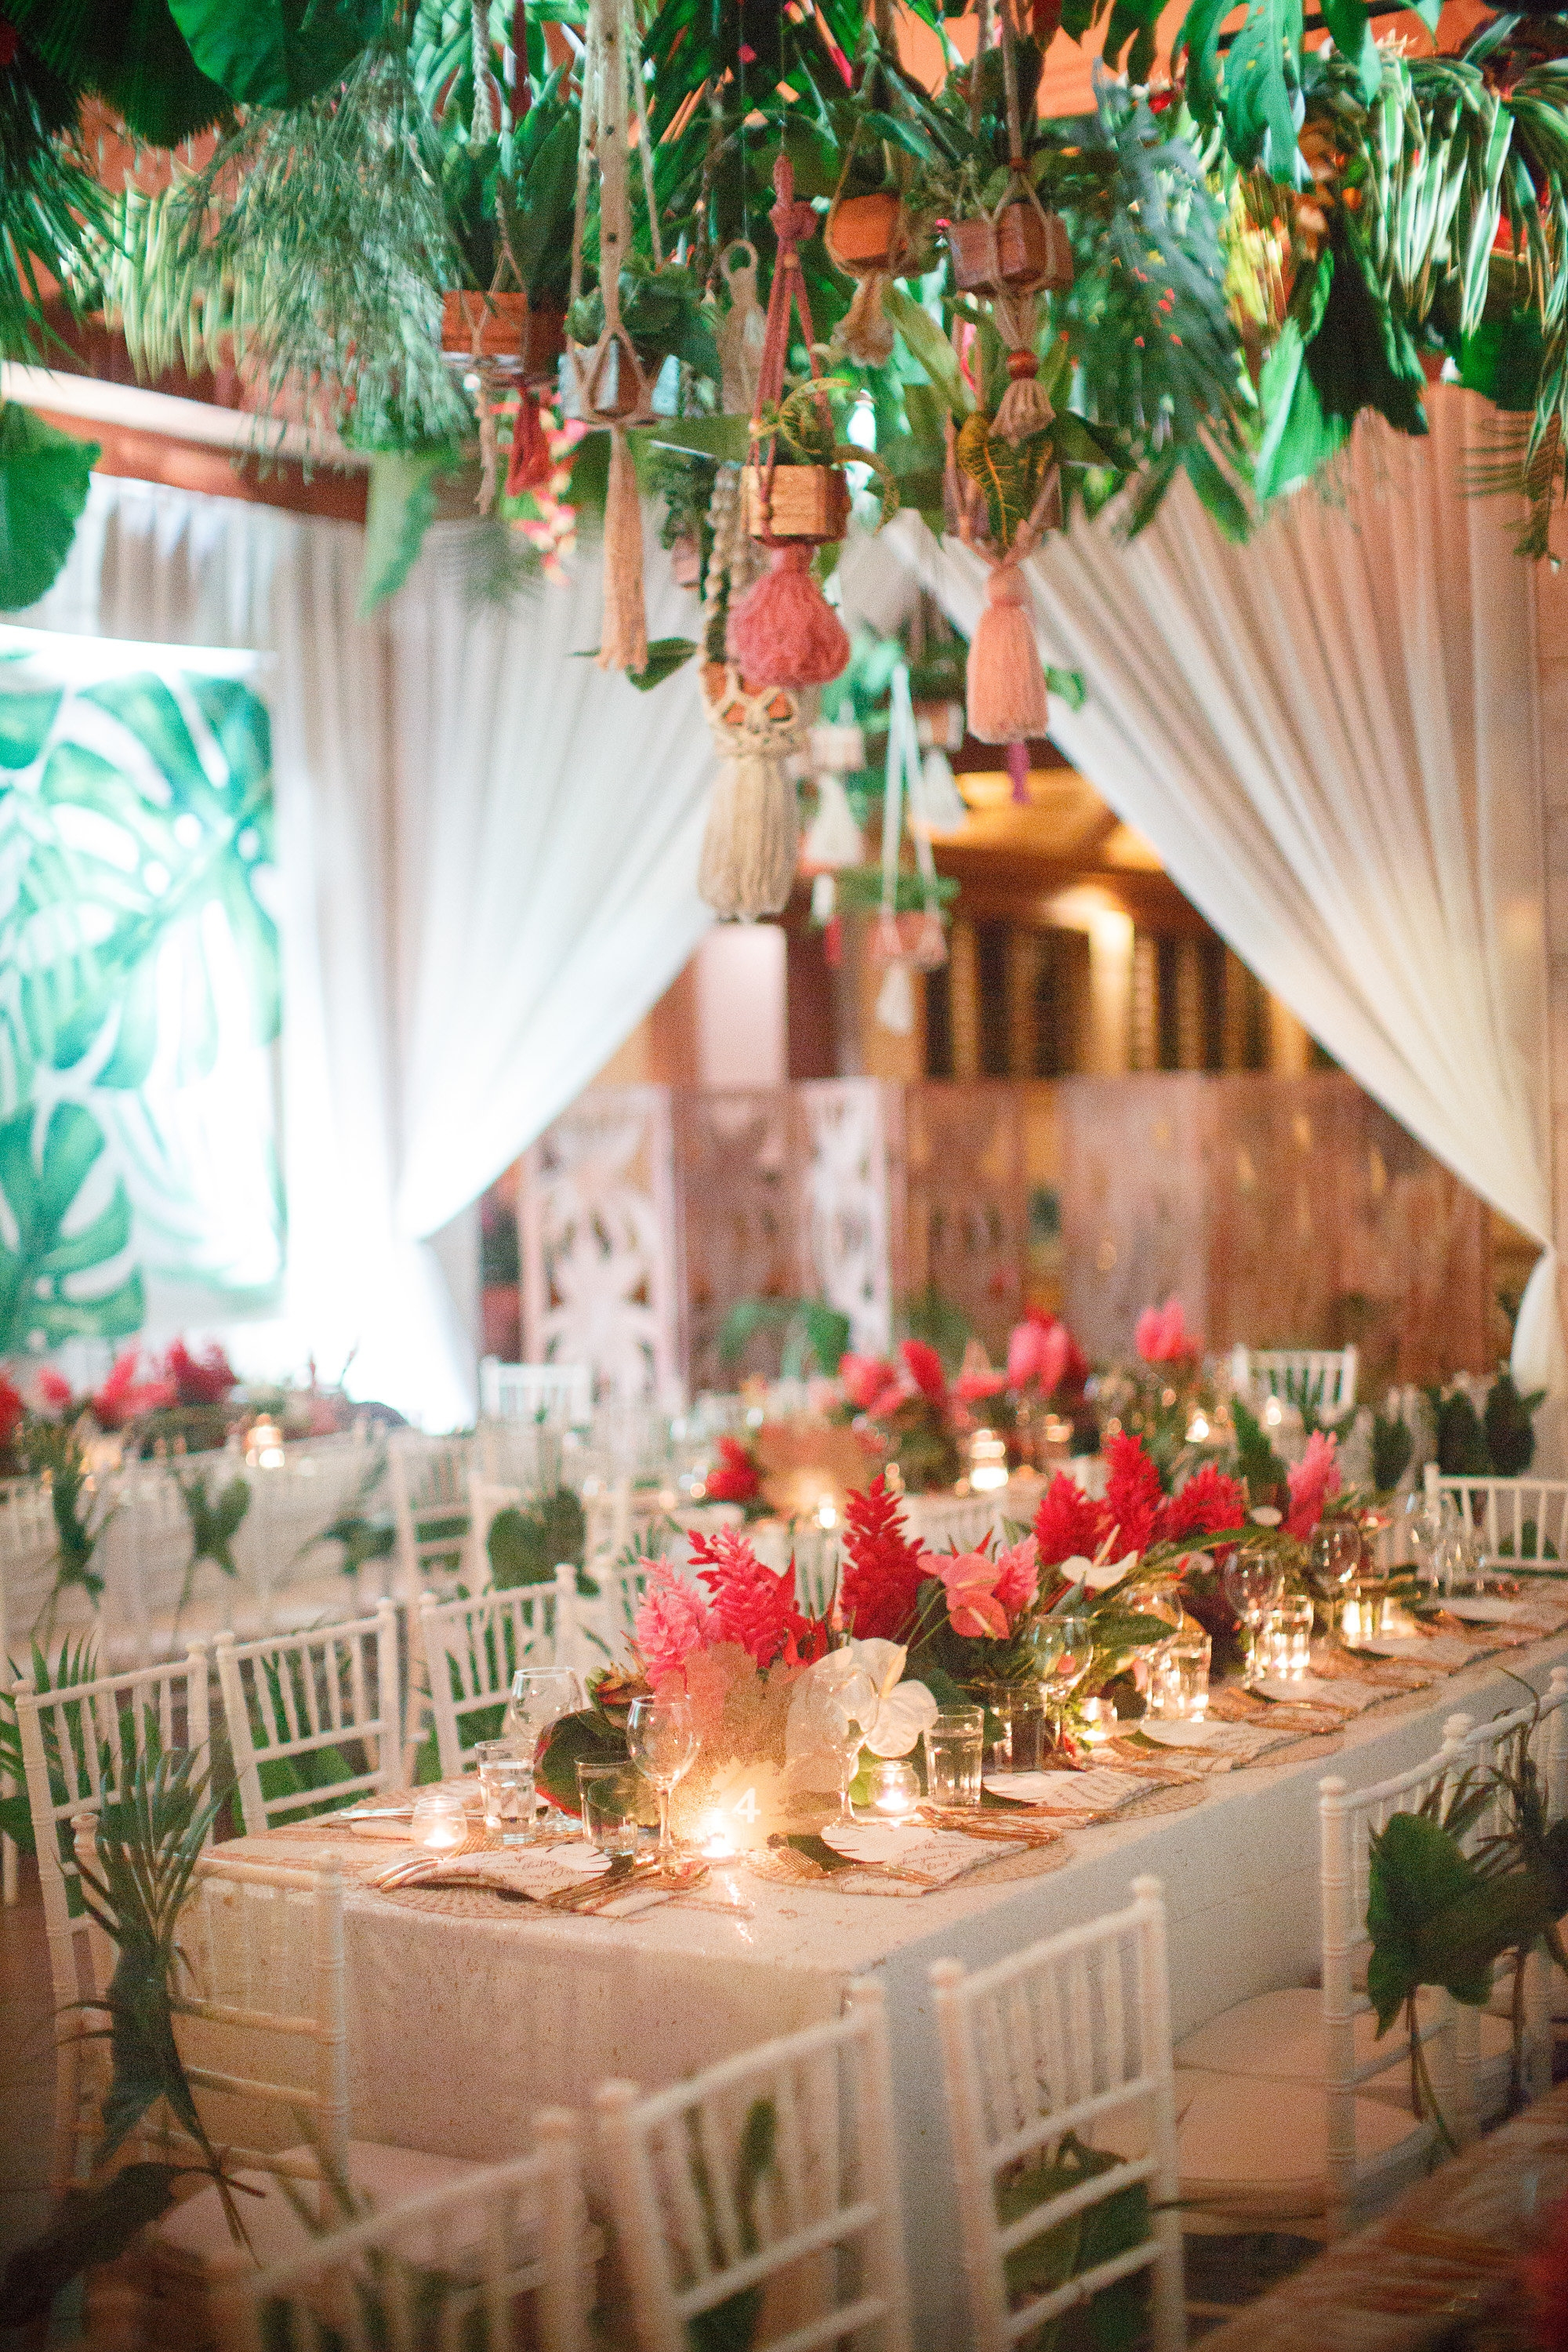 fiji_destination_wedding_centrepiece_design.jpg